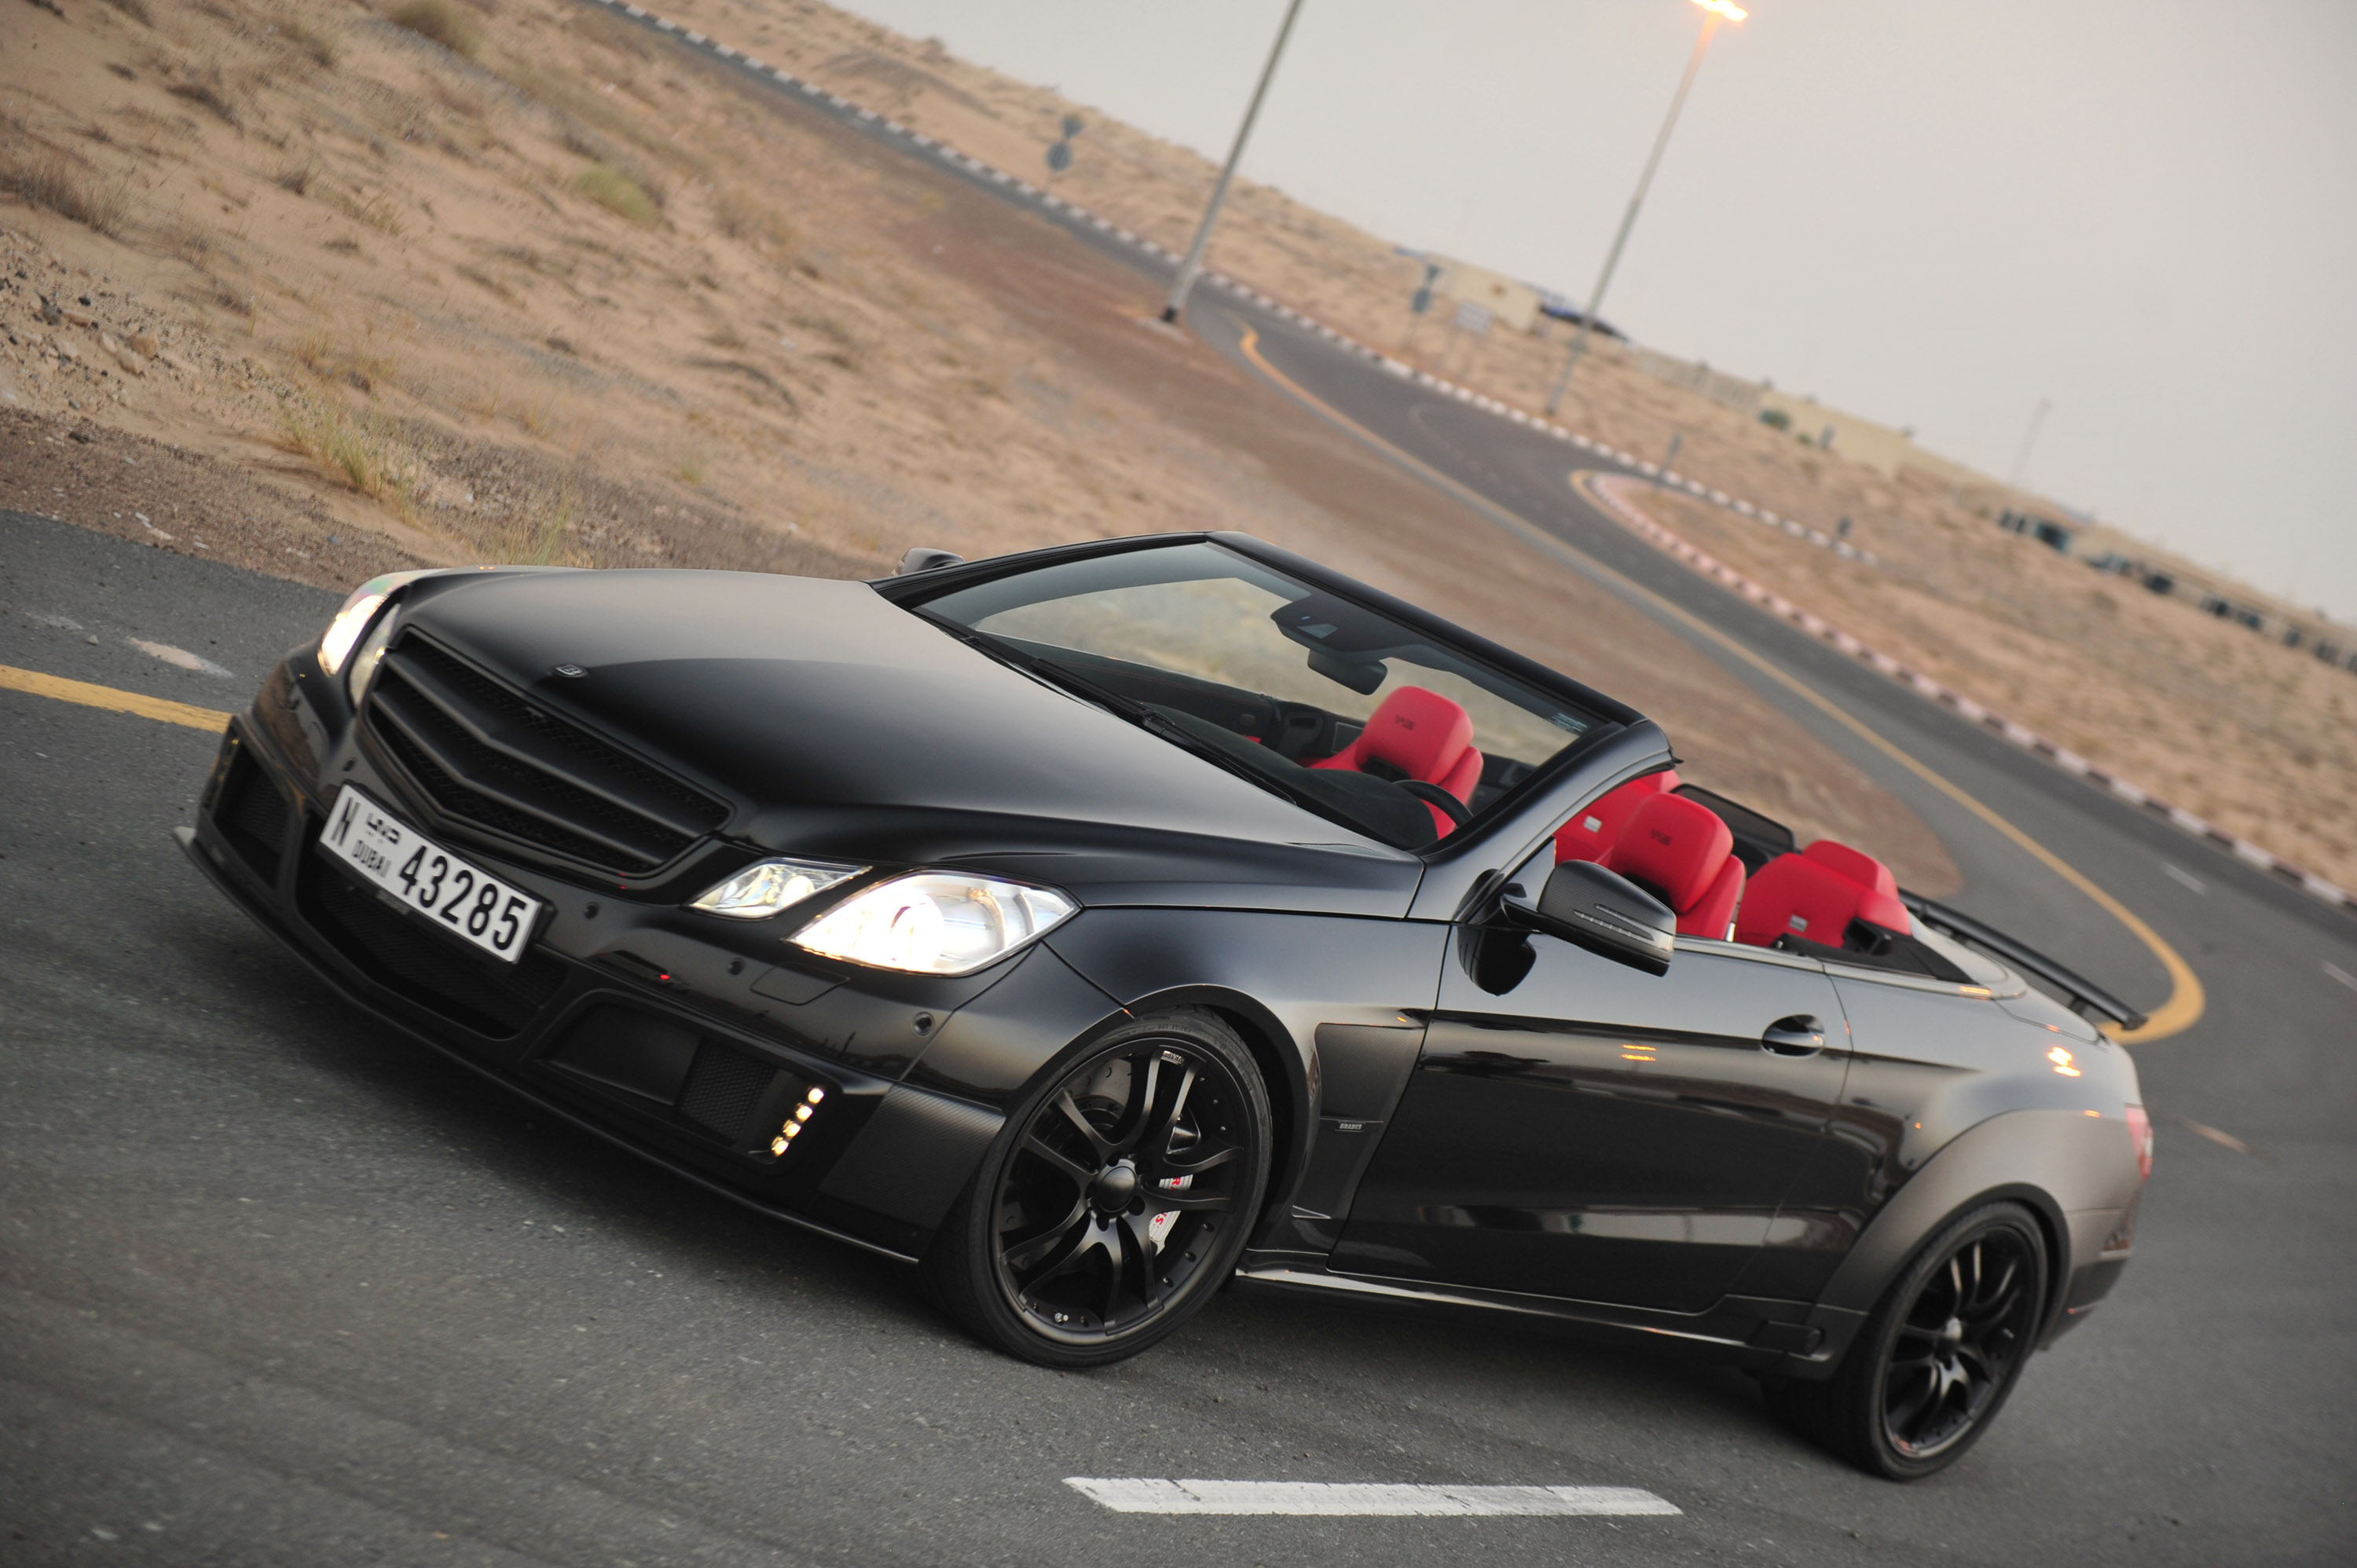 2011 brabus mercedes classe e 800 v12 cabriolet dark cars wallpapers. Black Bedroom Furniture Sets. Home Design Ideas